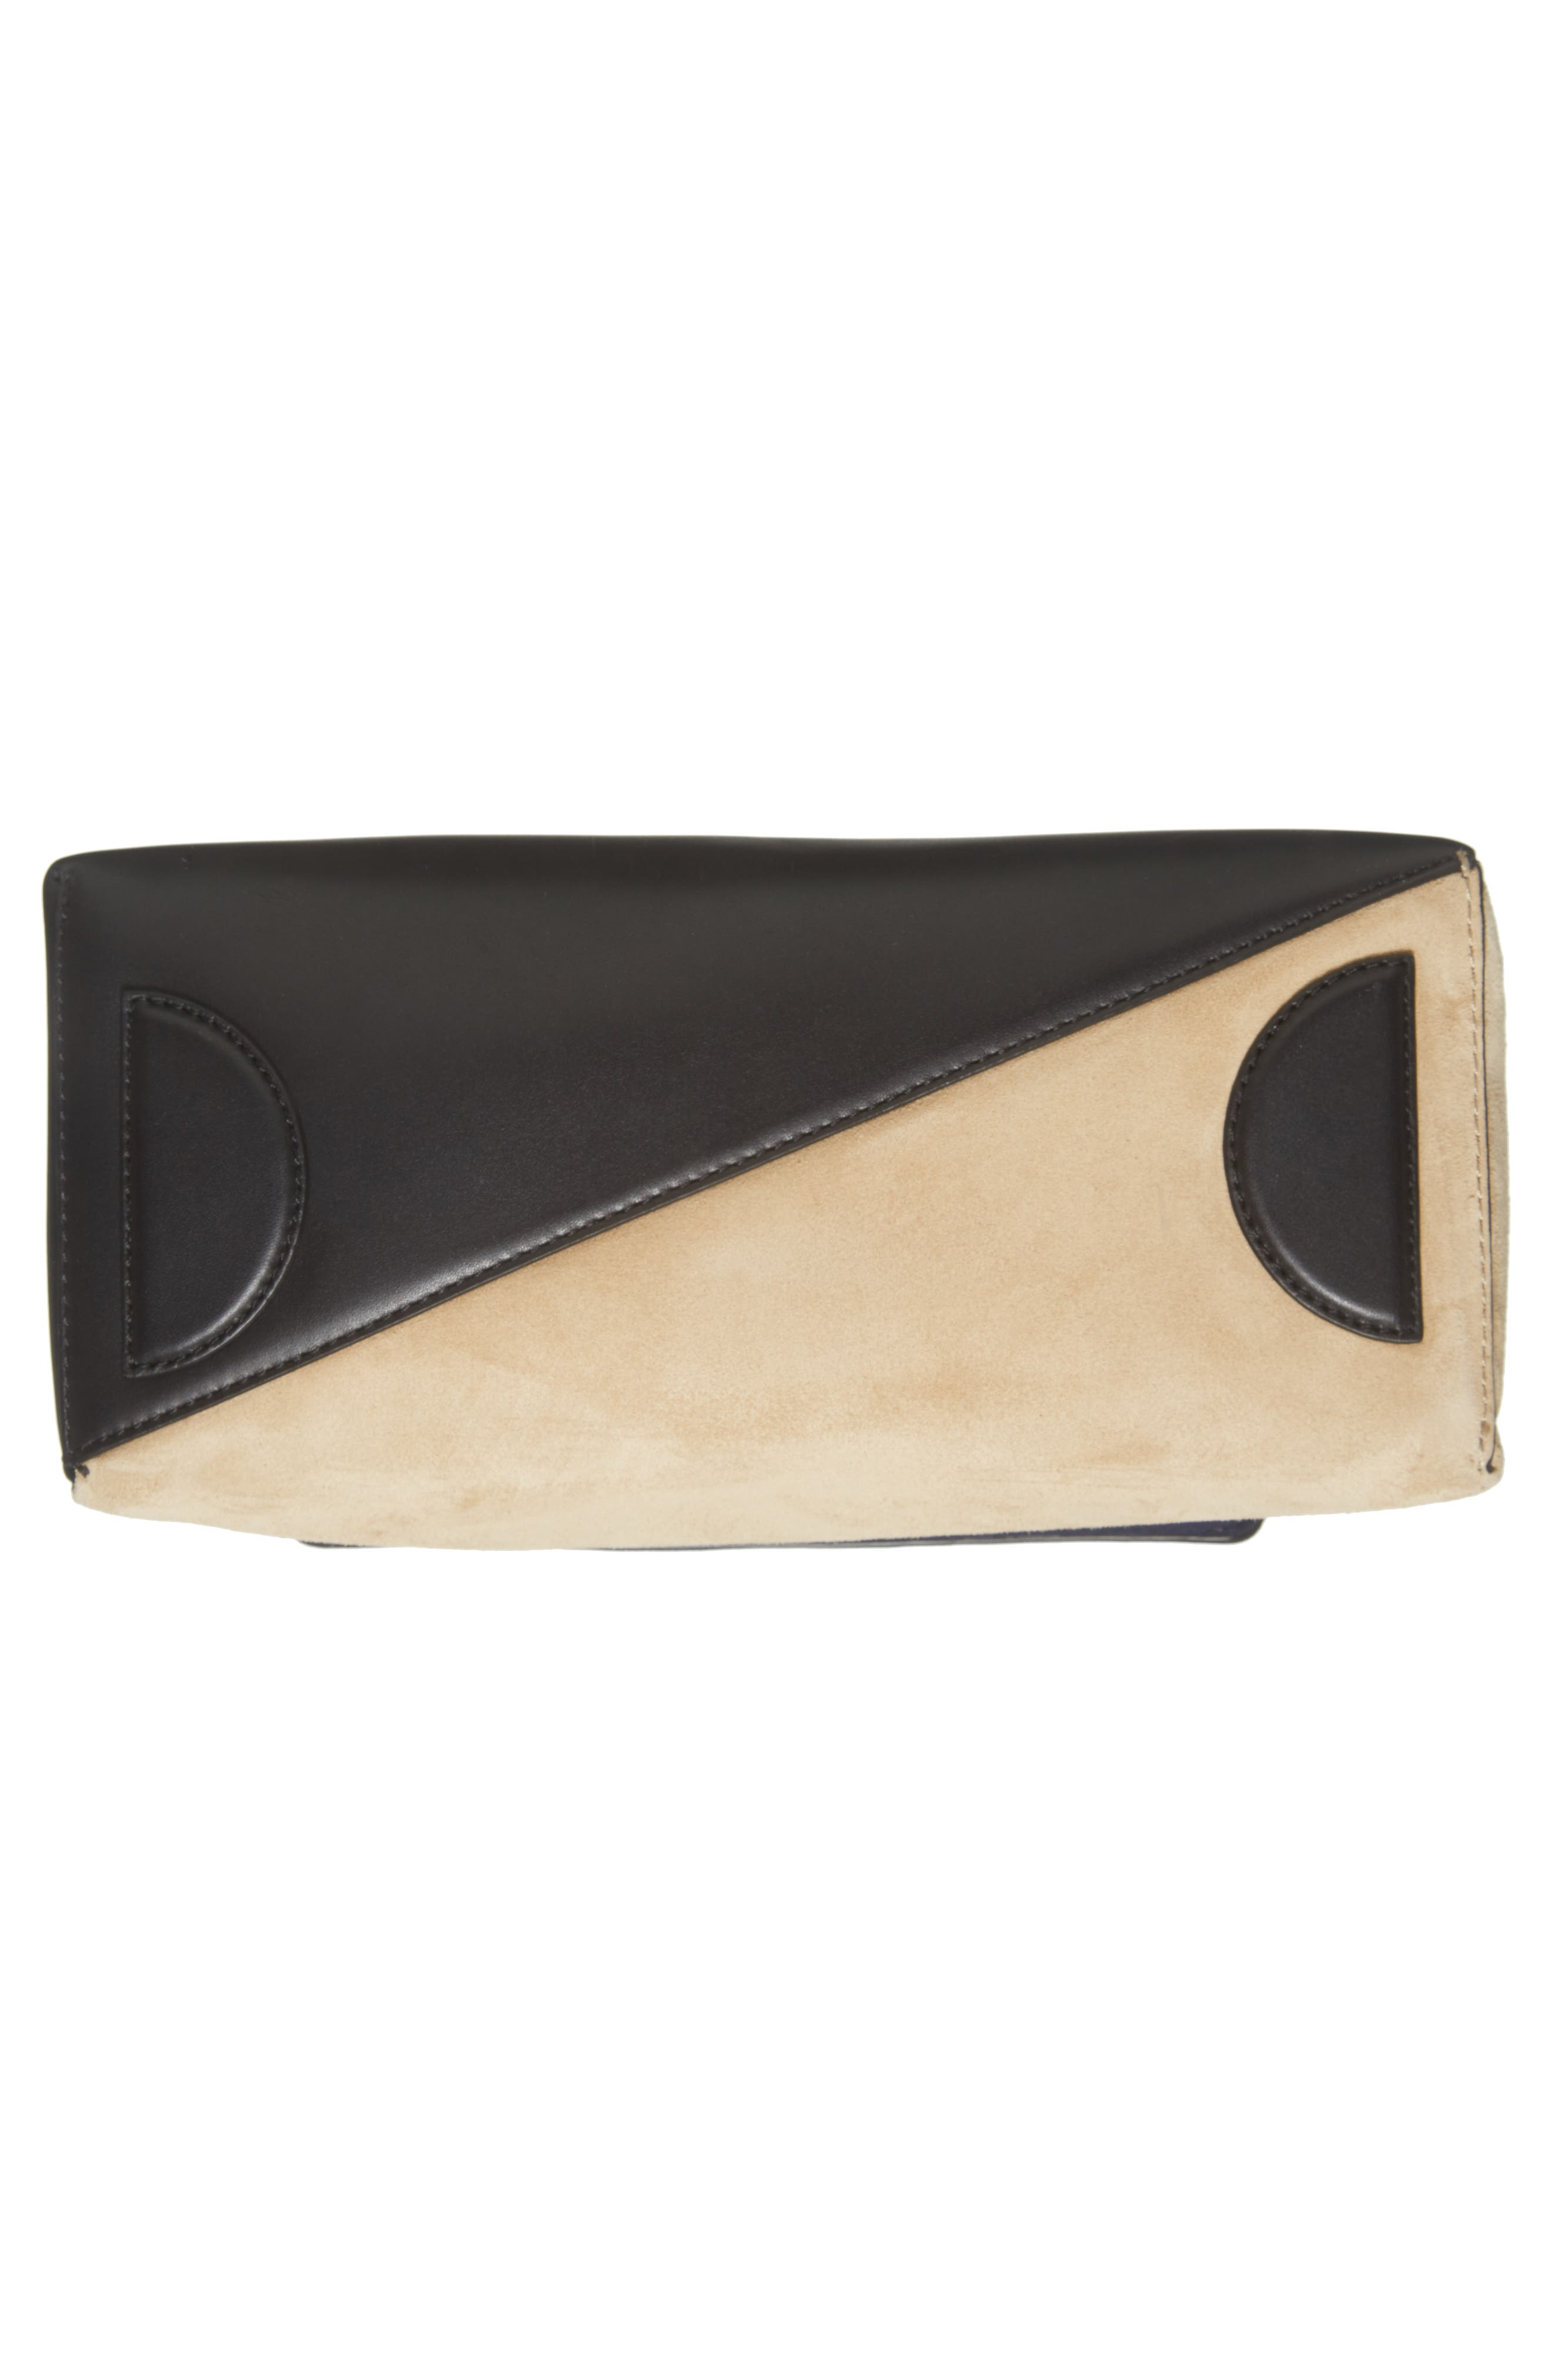 Small Leather & Suede Satchel,                             Alternate thumbnail 6, color,                             Black